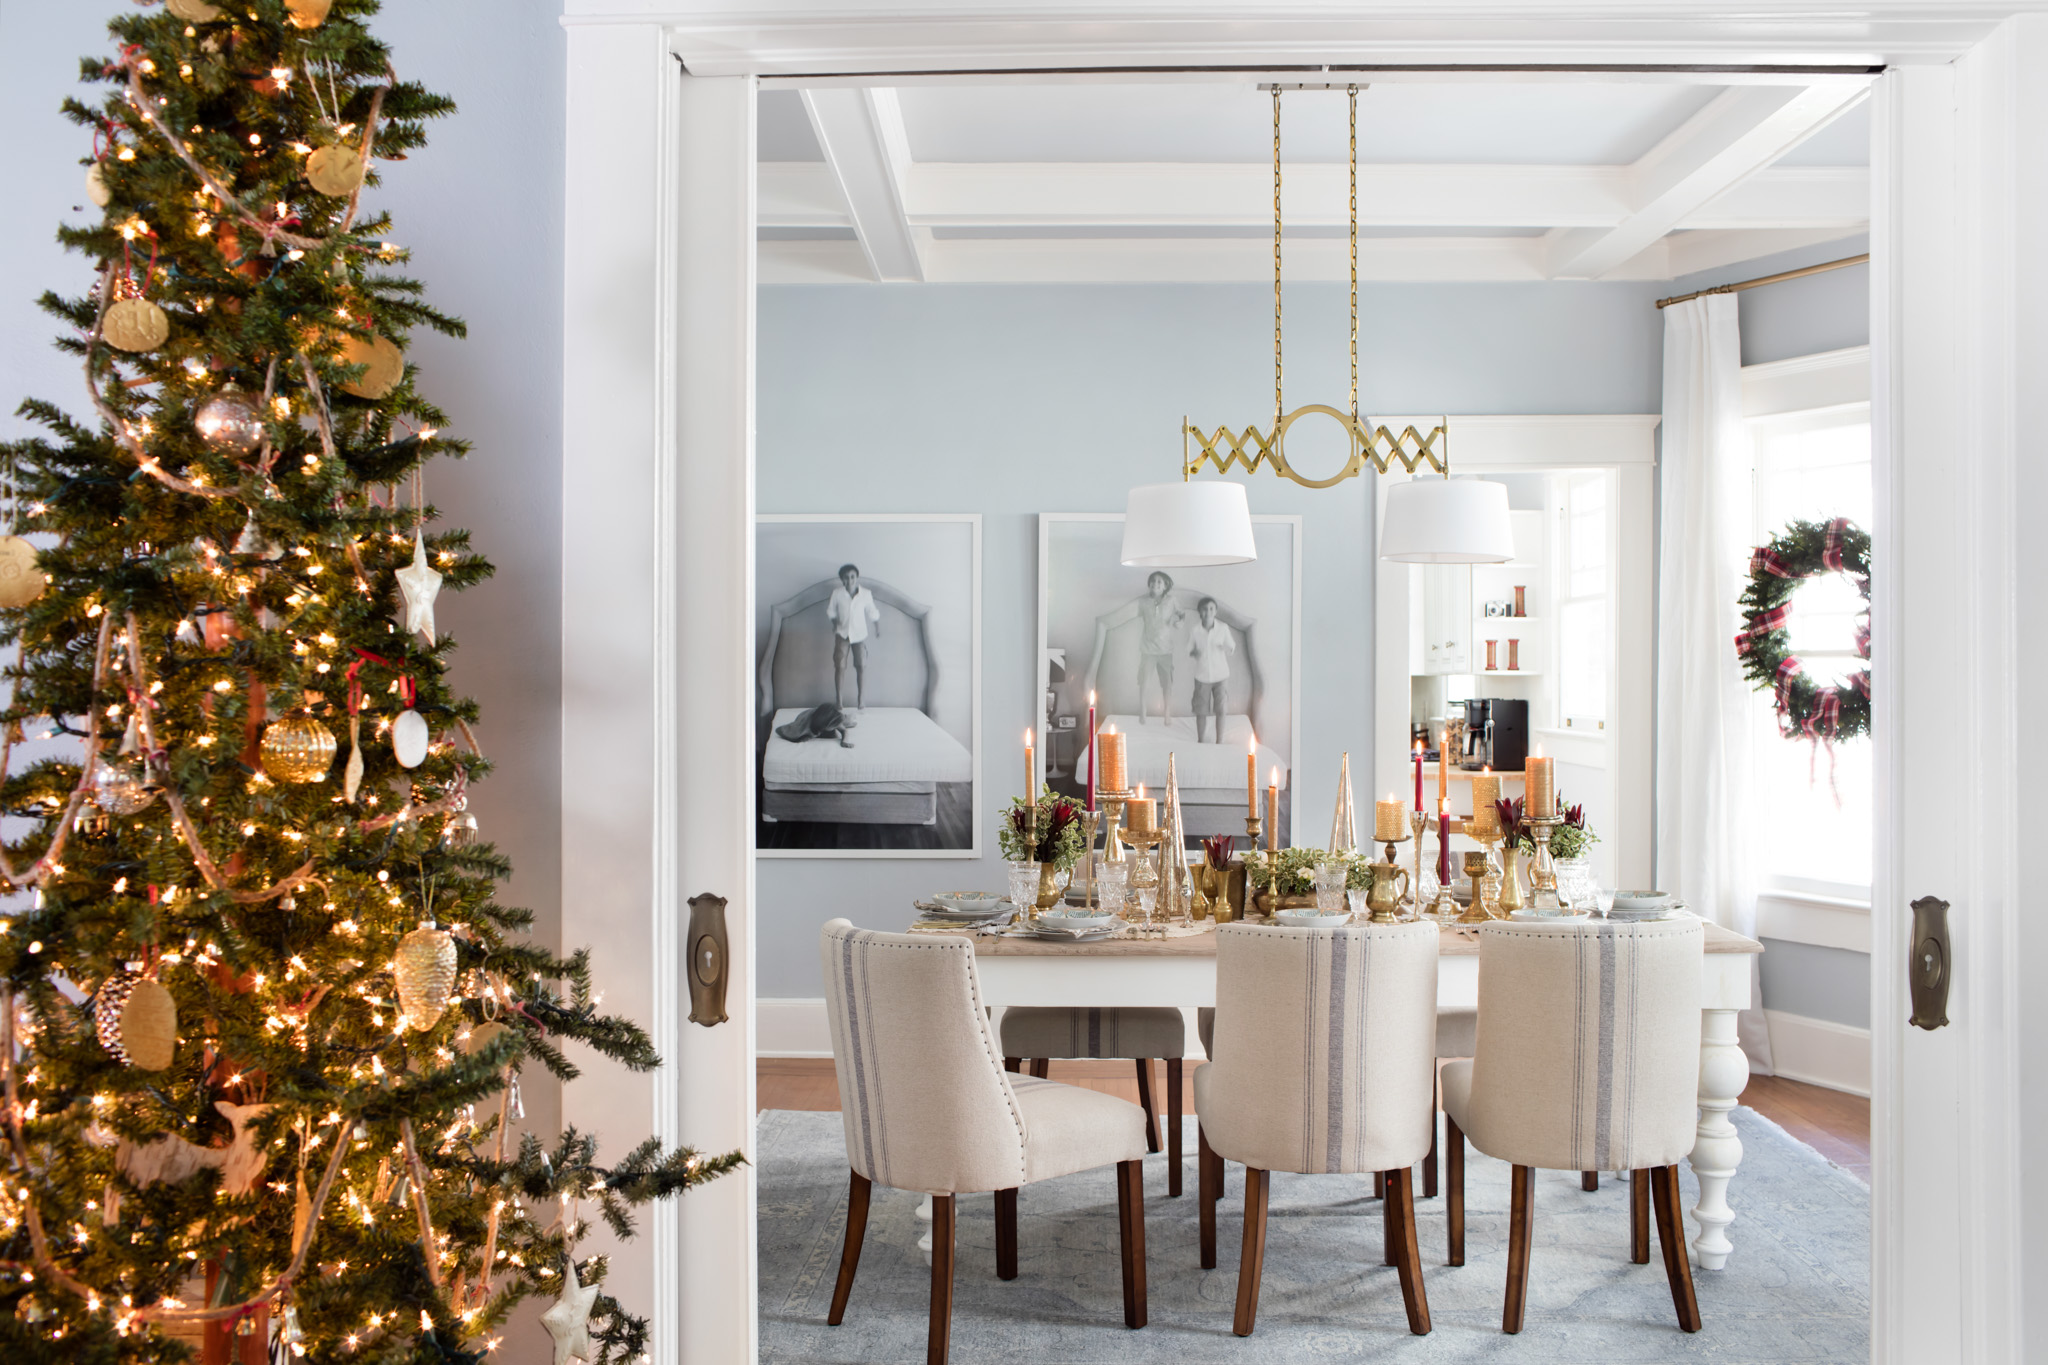 The Best Luxury Christmas Tree Decoration - Love Happens Blog